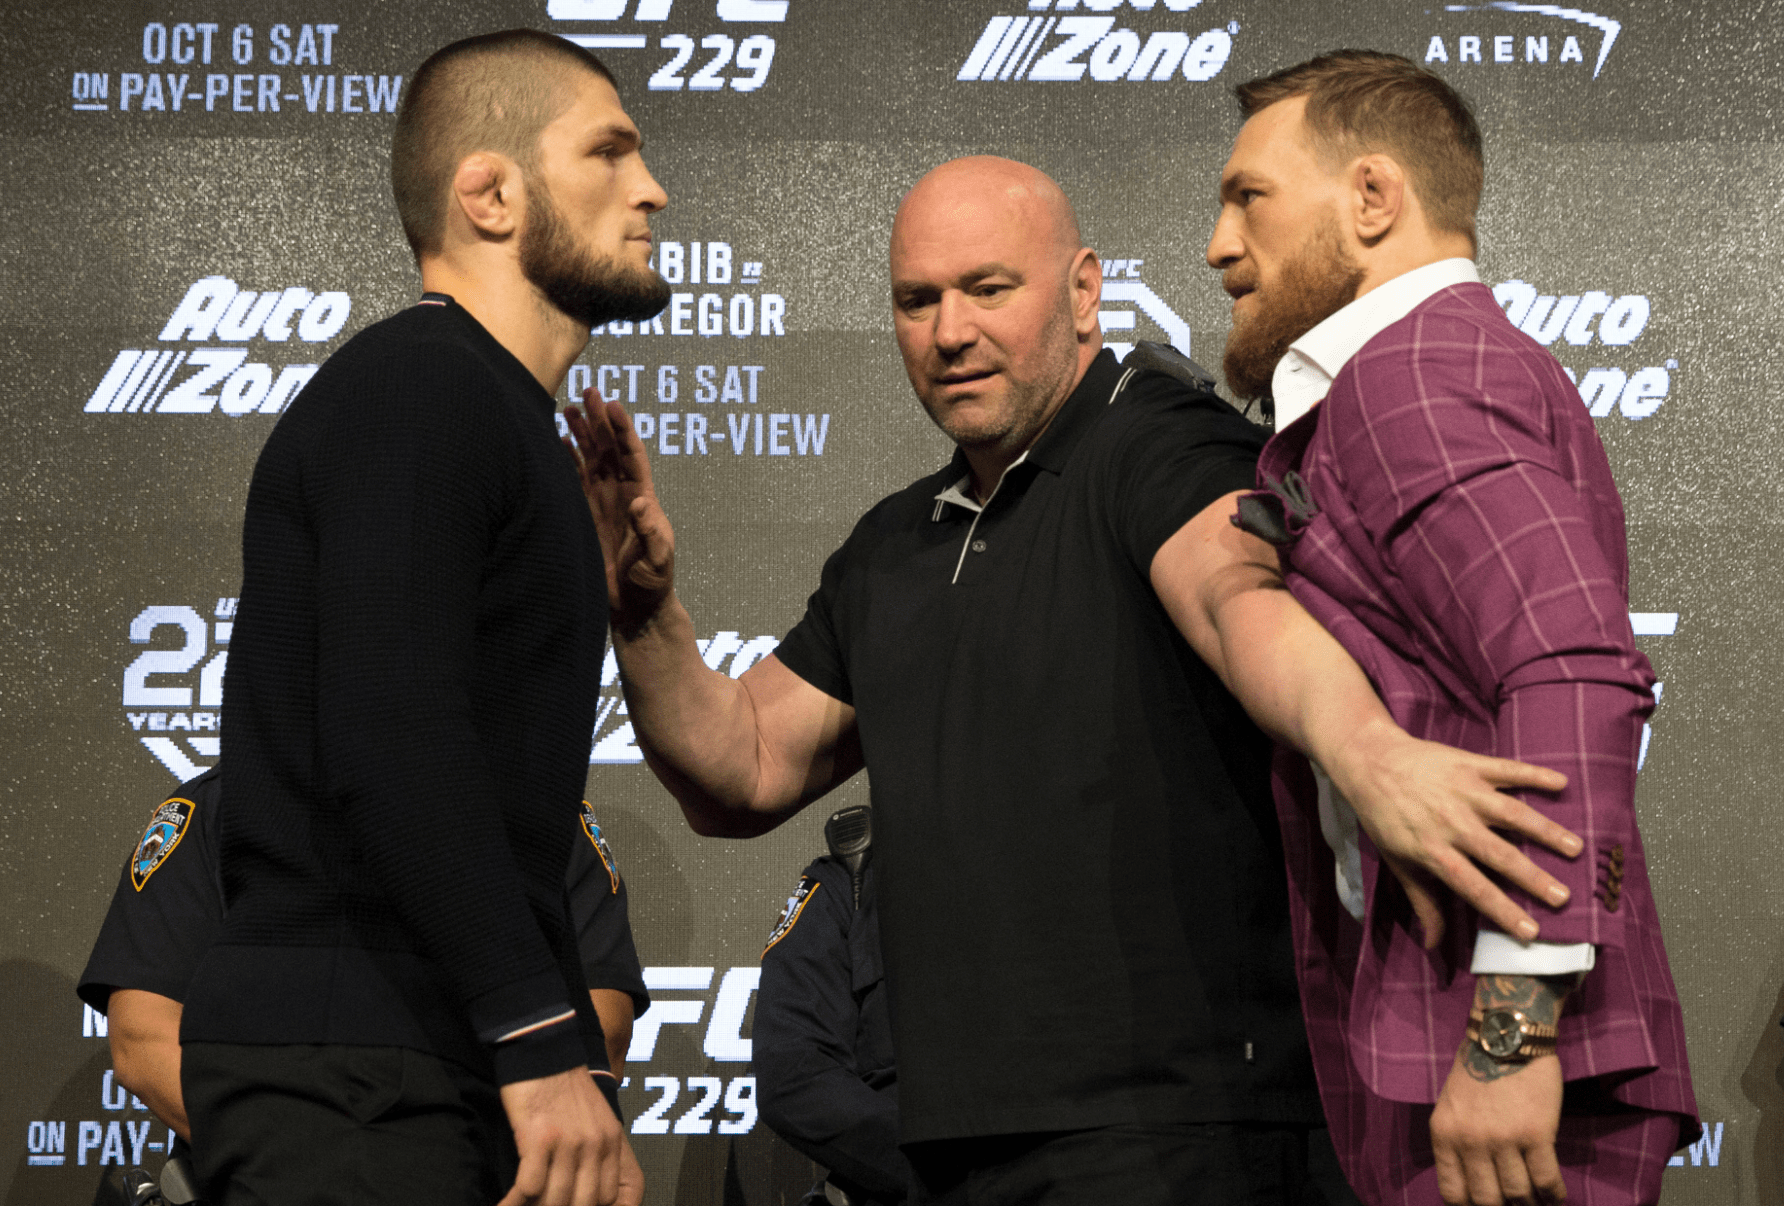 Dana White Expects Khabib vs Conor Rematch In 2019